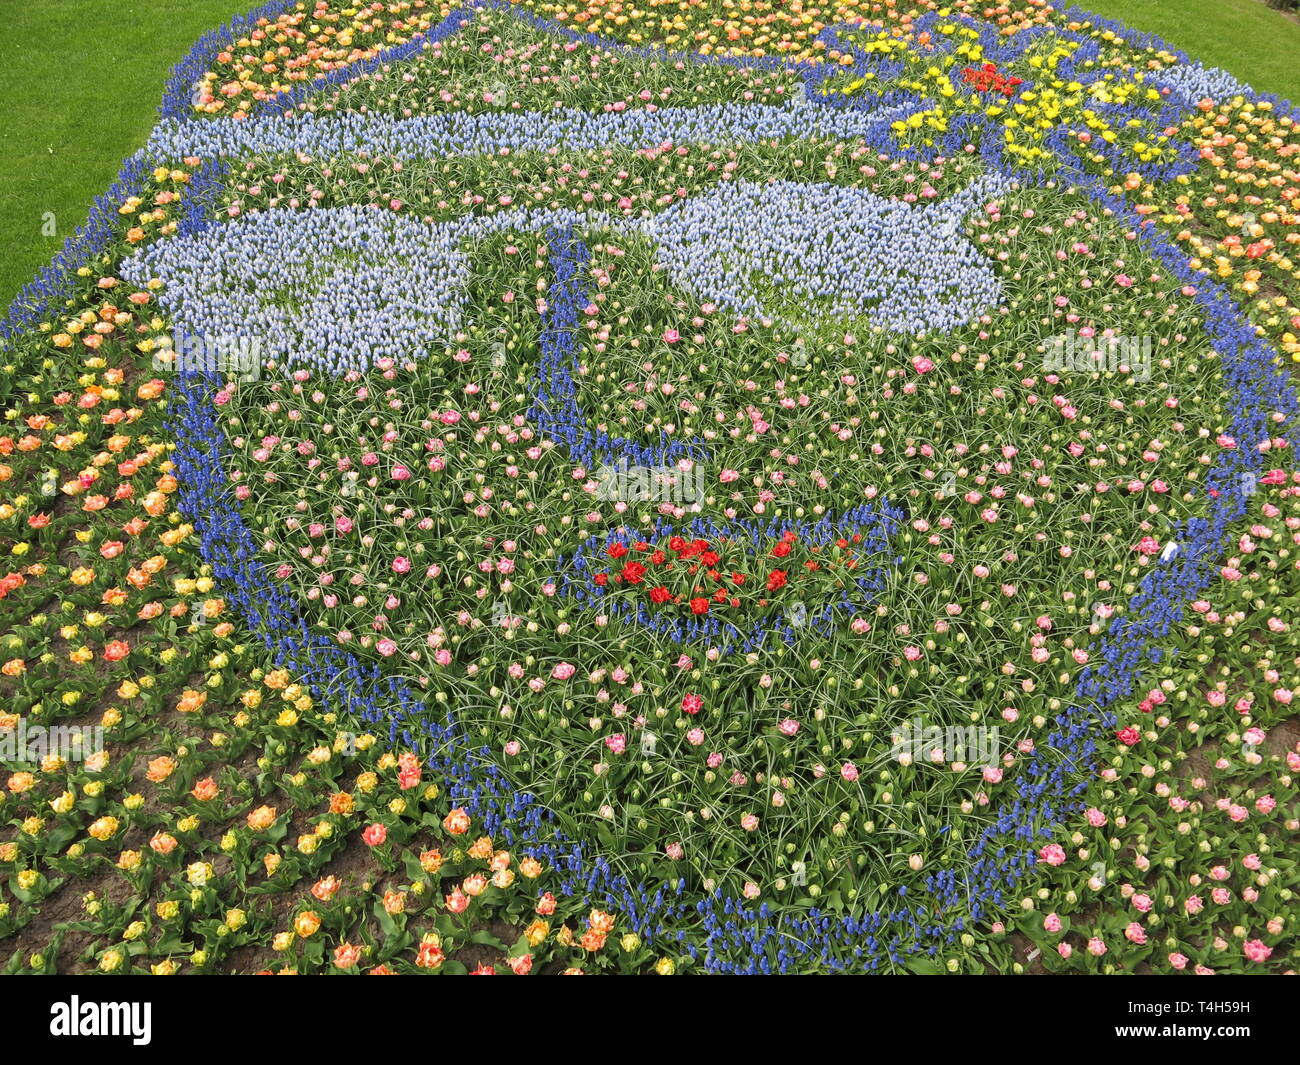 A flower bed display of planted bulbs featuring the visage of John Lennon in glasses for the 'Flower Power' theme at the 2019 Keukenhof tulip festival - Stock Image